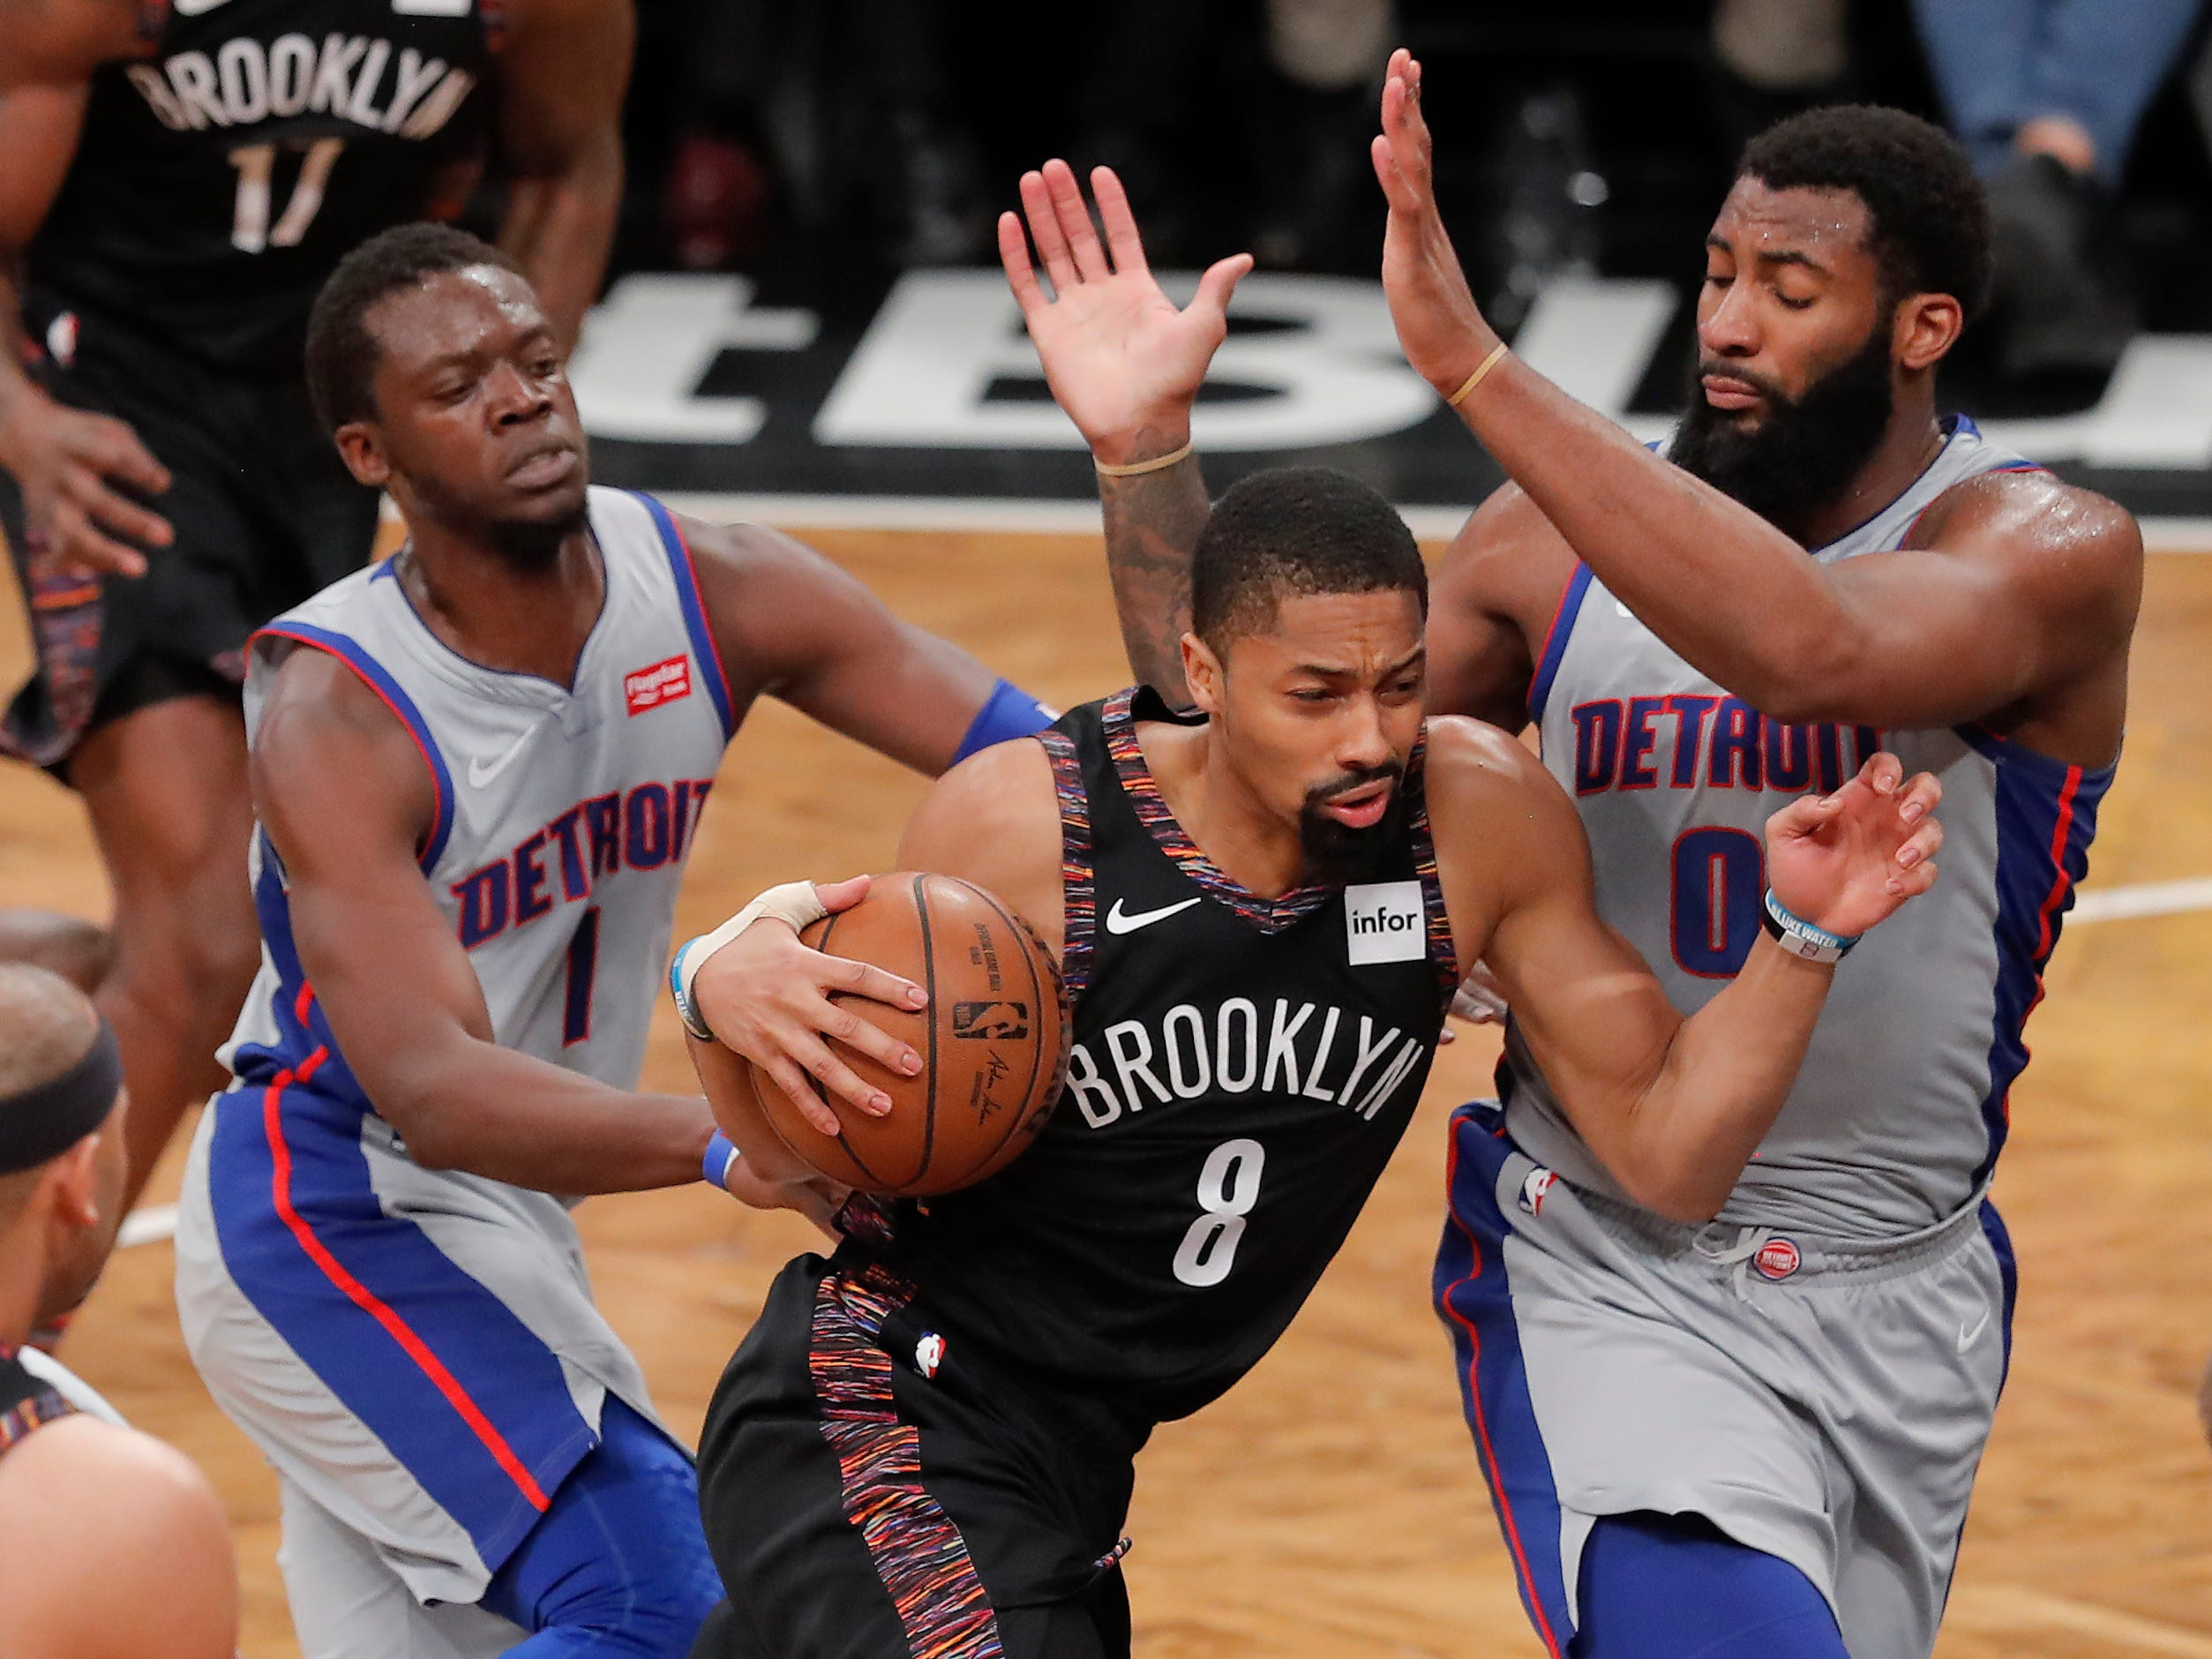 Brooklyn Nets guard Spencer Dinwiddie (8) drives against Detroit Pistons guard Reggie Jackson (1) and Detroit Pistons center Andre Drummond (0) during the third quarter.